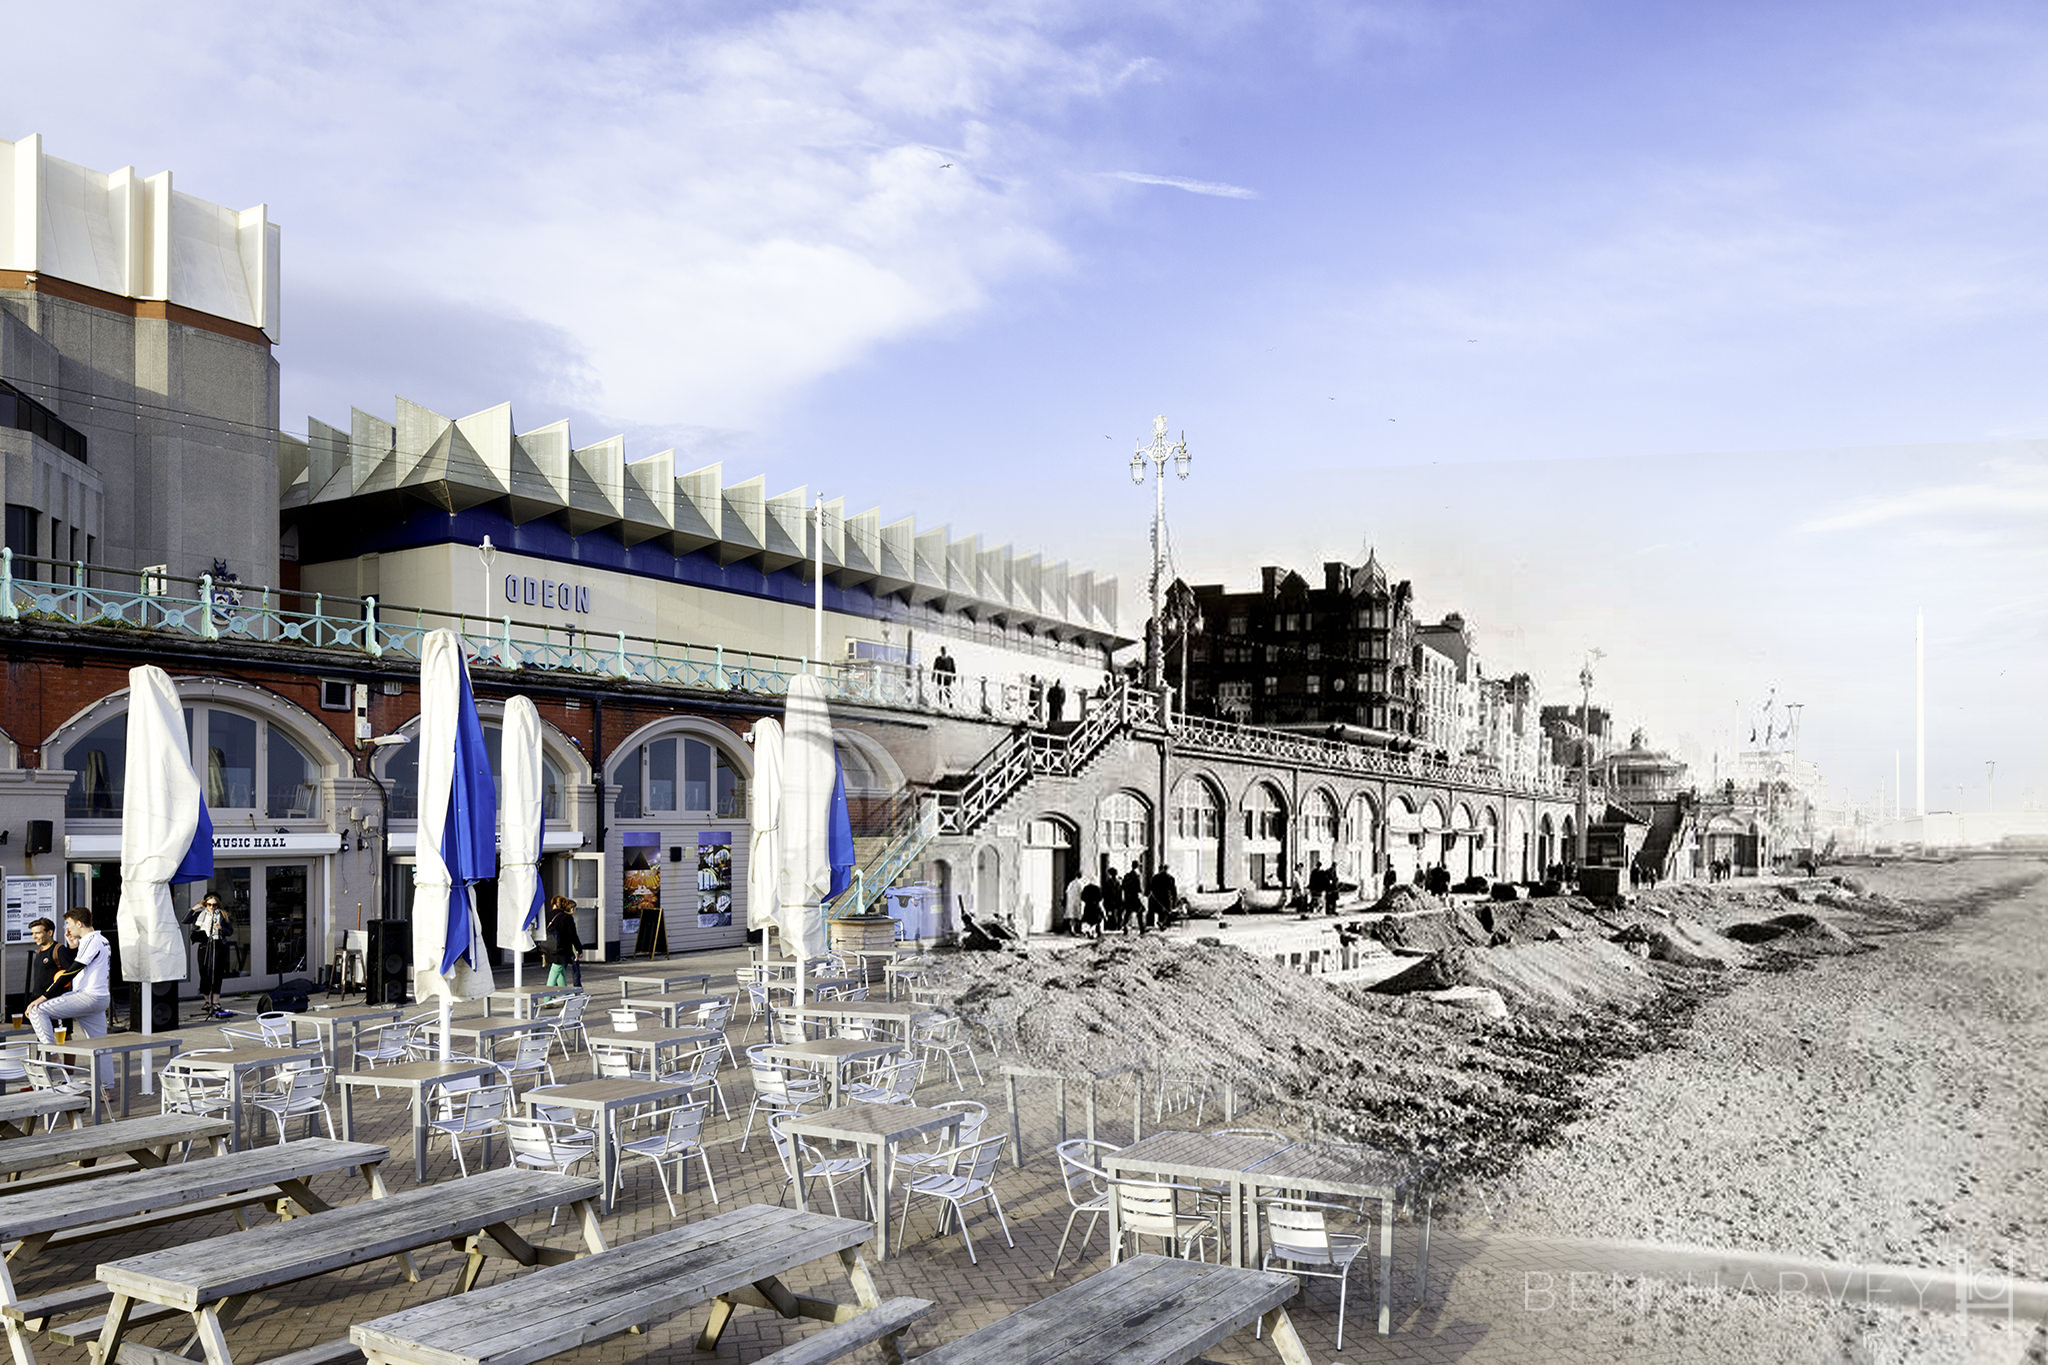 10. Odeon and seafront